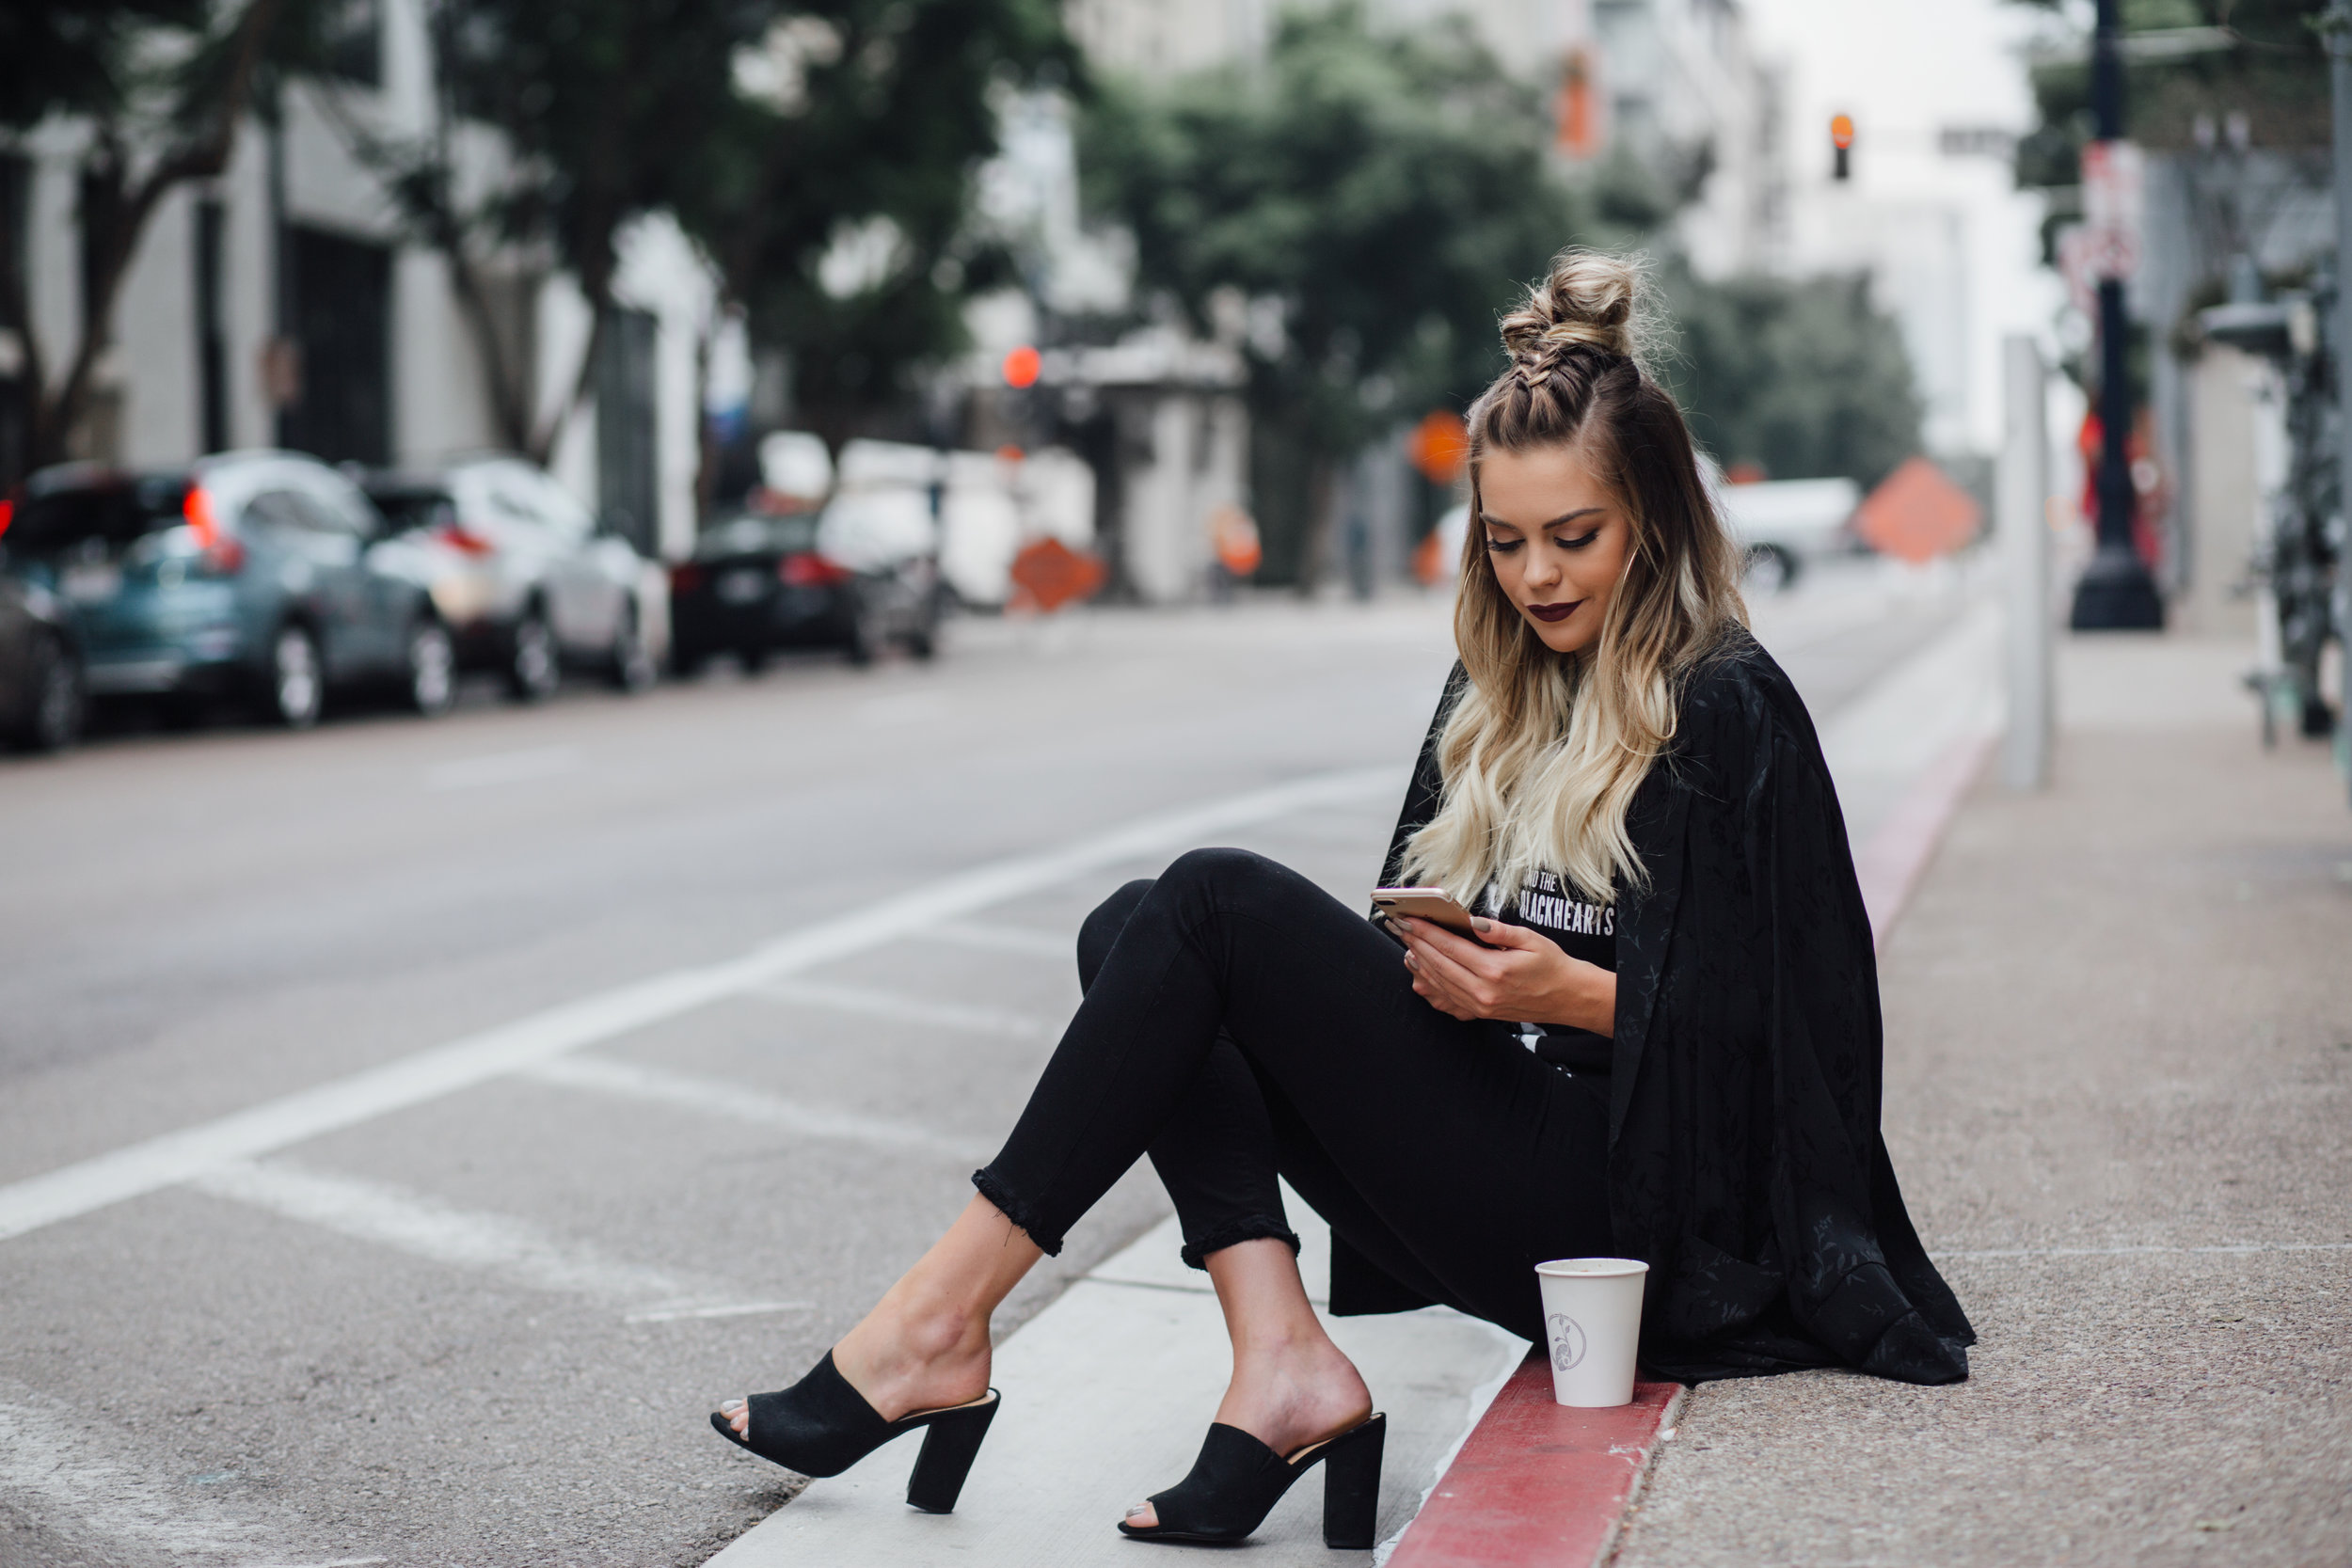 How is your IG making you stand out? - Use these top photo editing apps to help set you apart from the crowd.